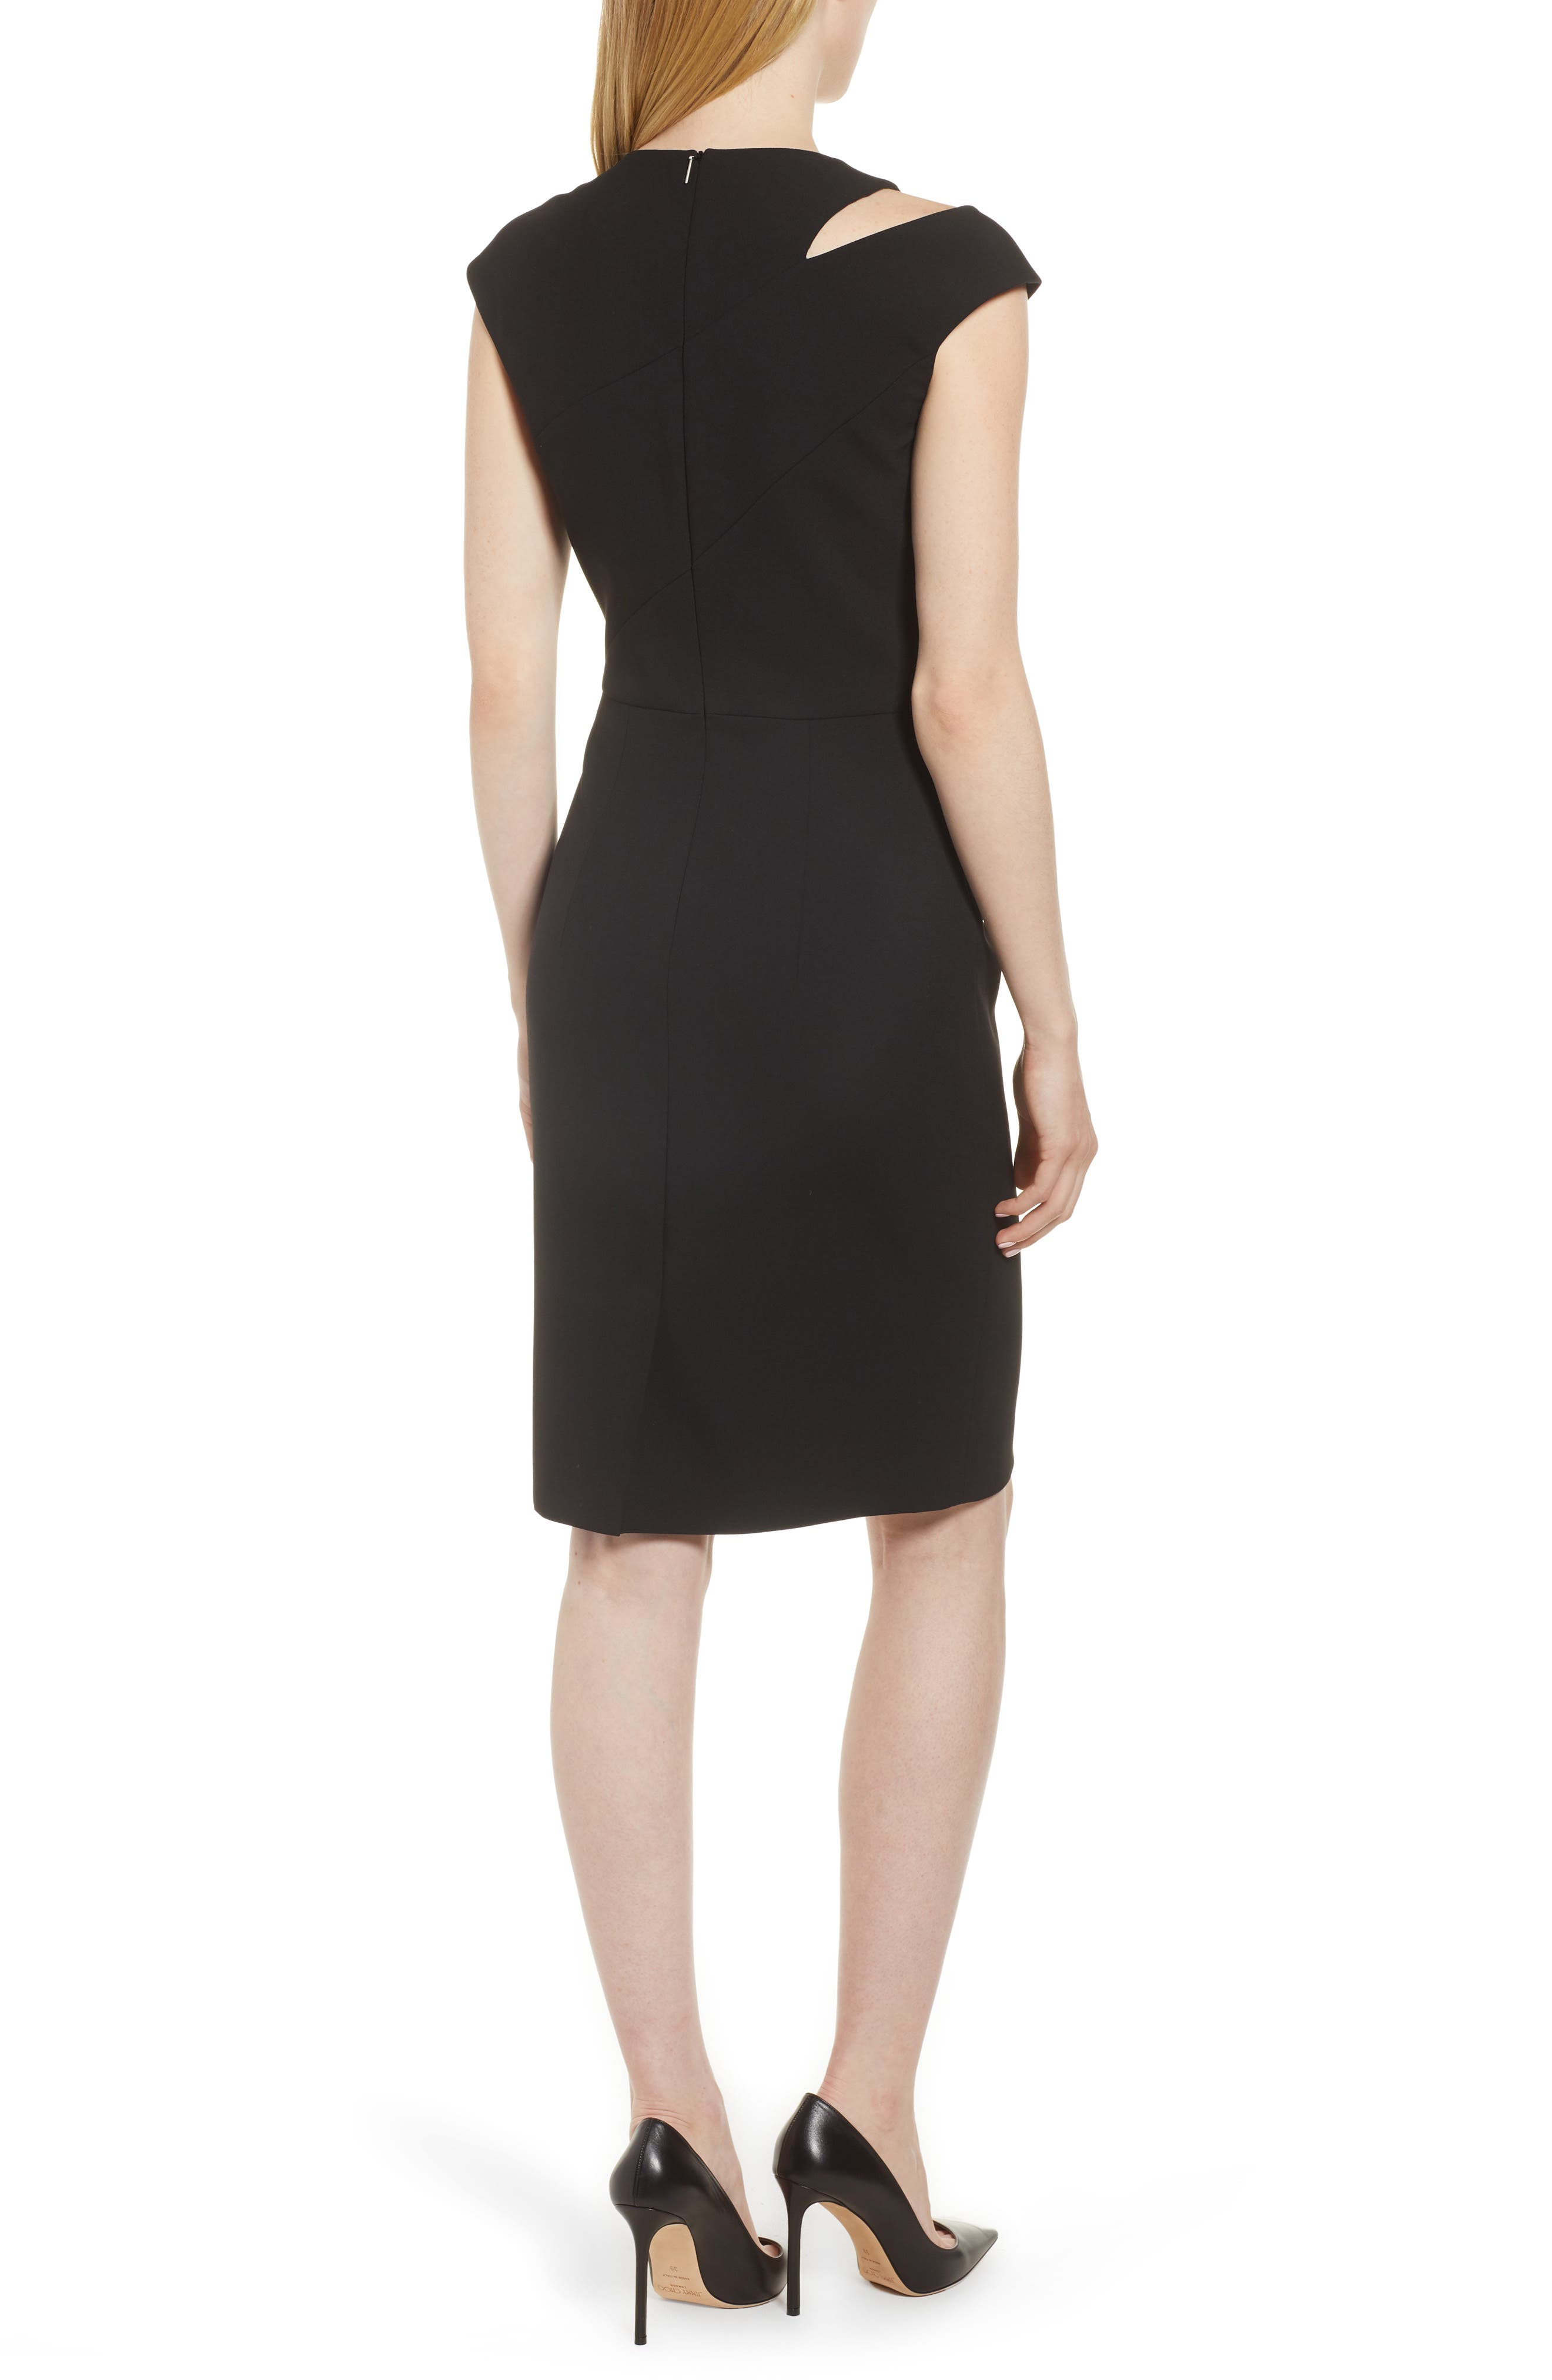 Danouk Shoulder Cutout Dress,                             Alternate thumbnail 2, color,                             Black